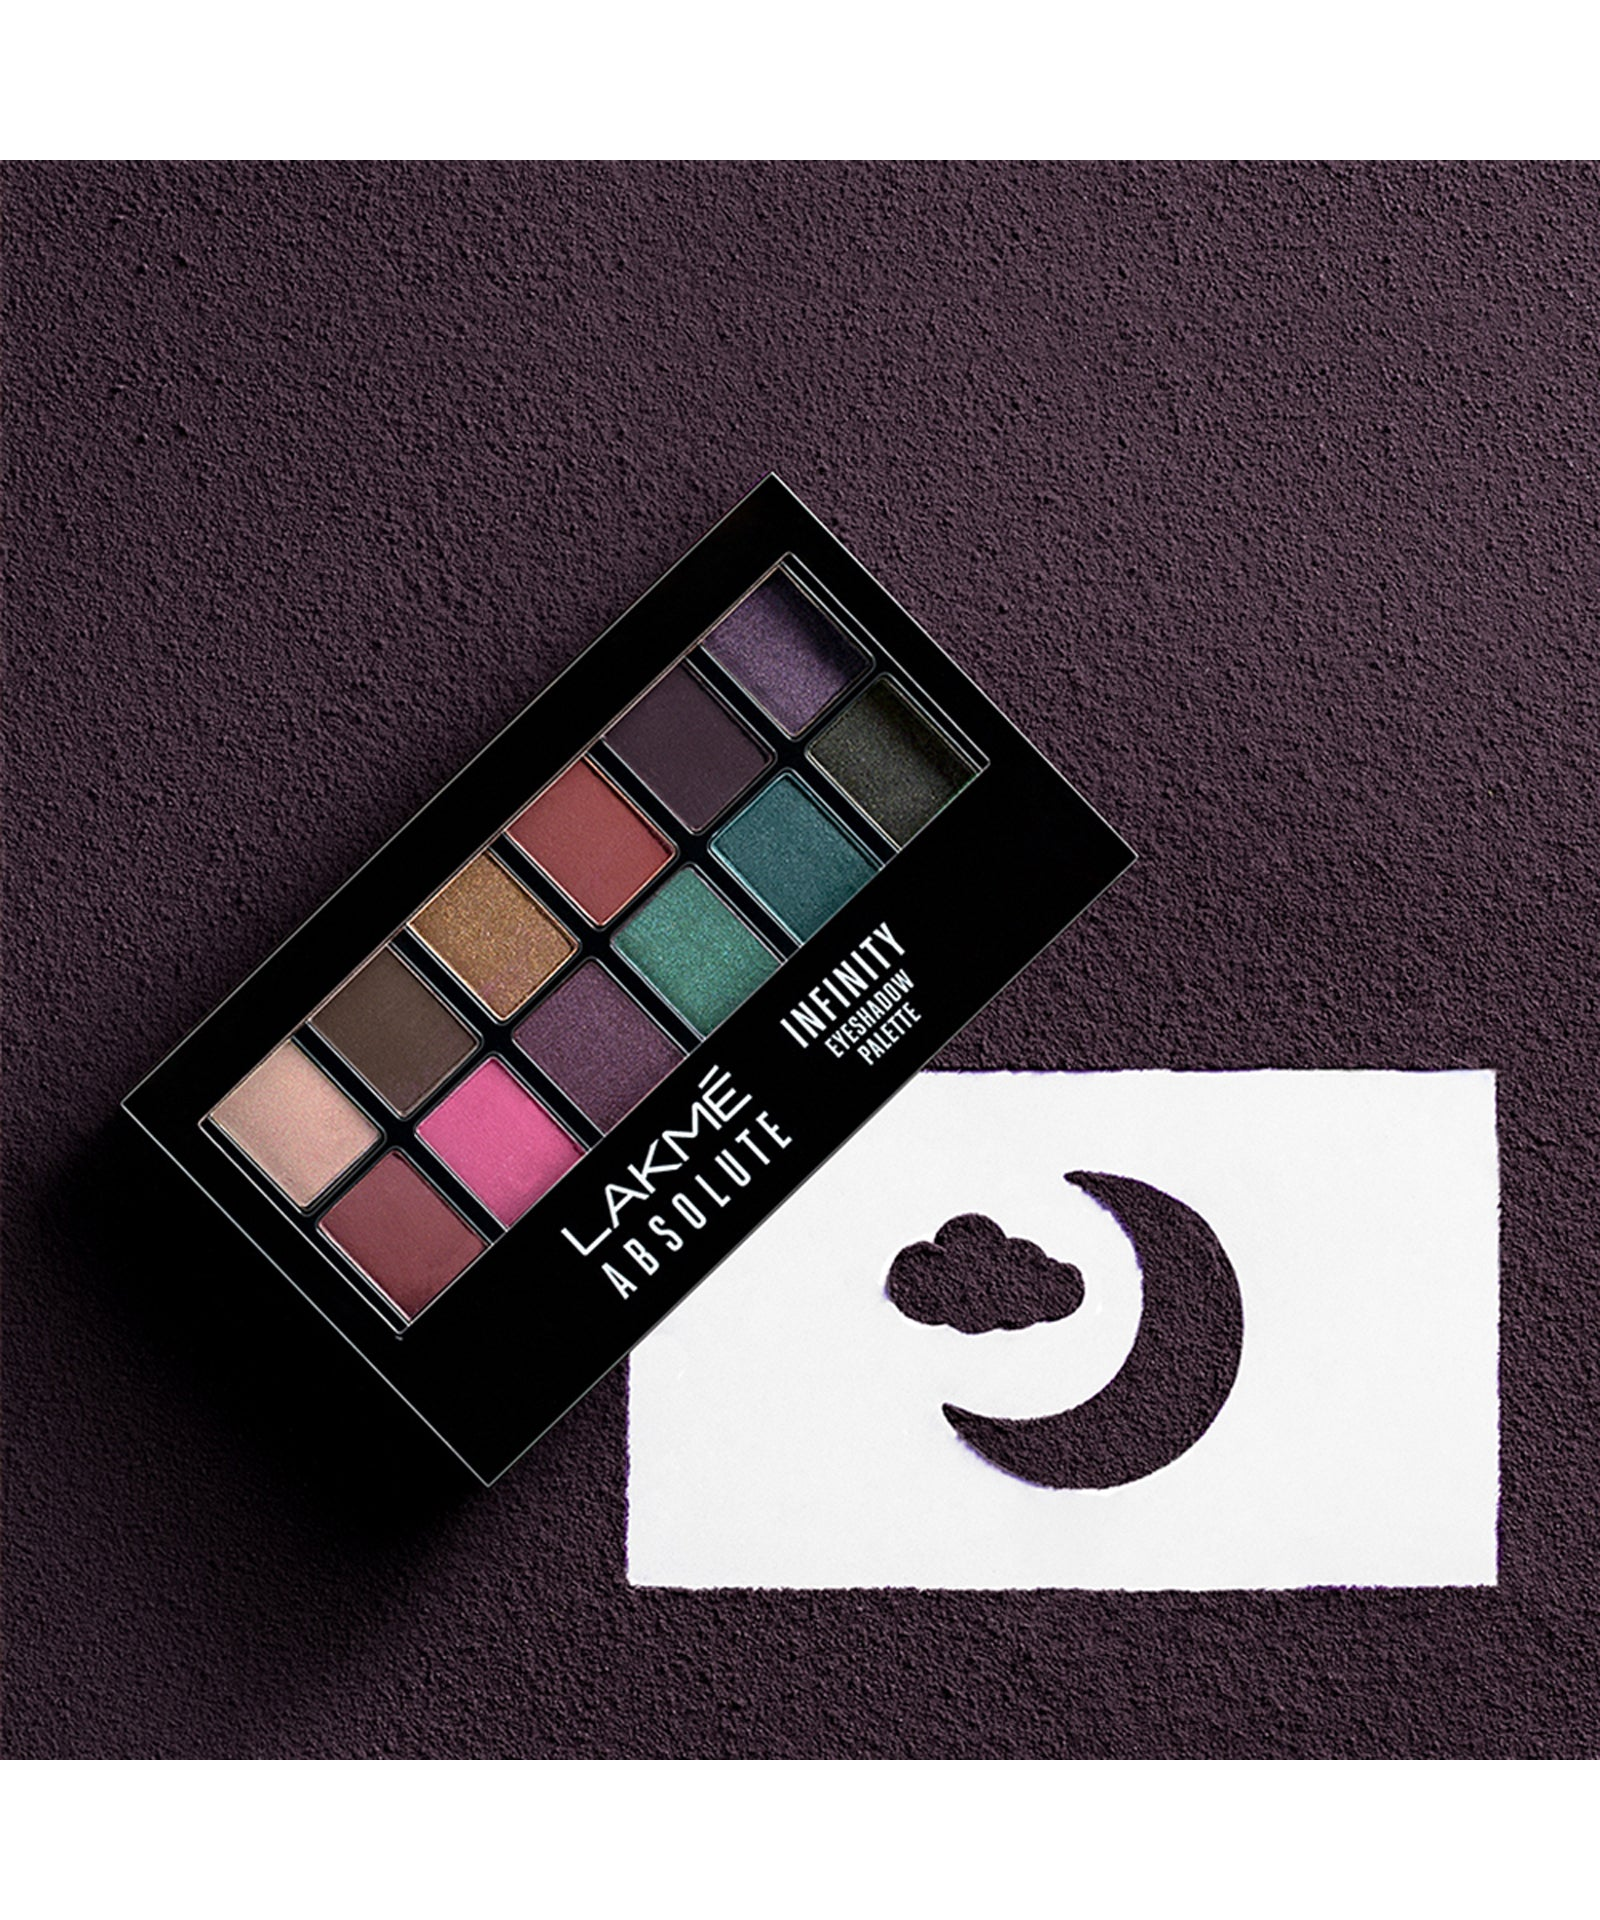 Lakmé Absolute Infinity Eye shadow Palette - Midnight Magic